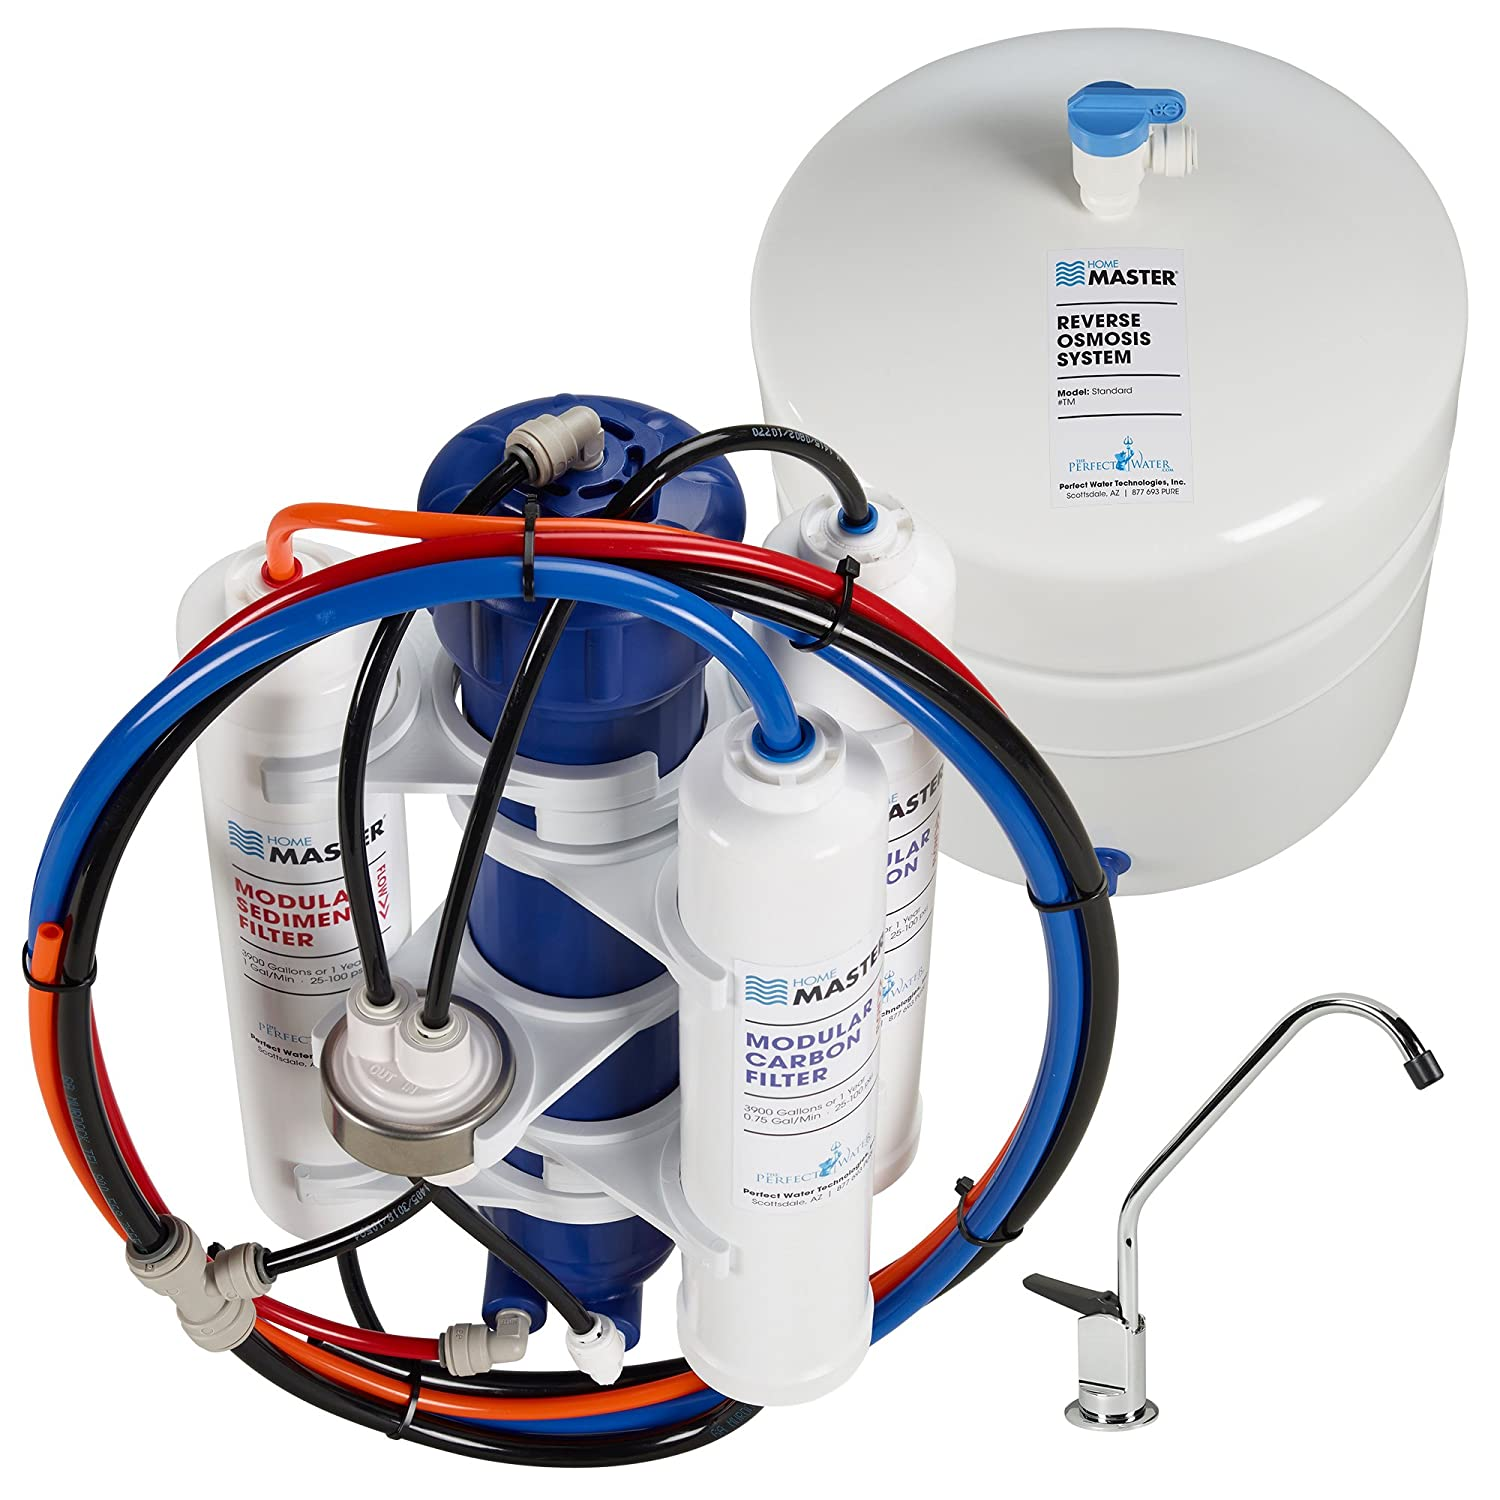 Home Master TM Standard Undersink Reverse Osmosis Water Filter System